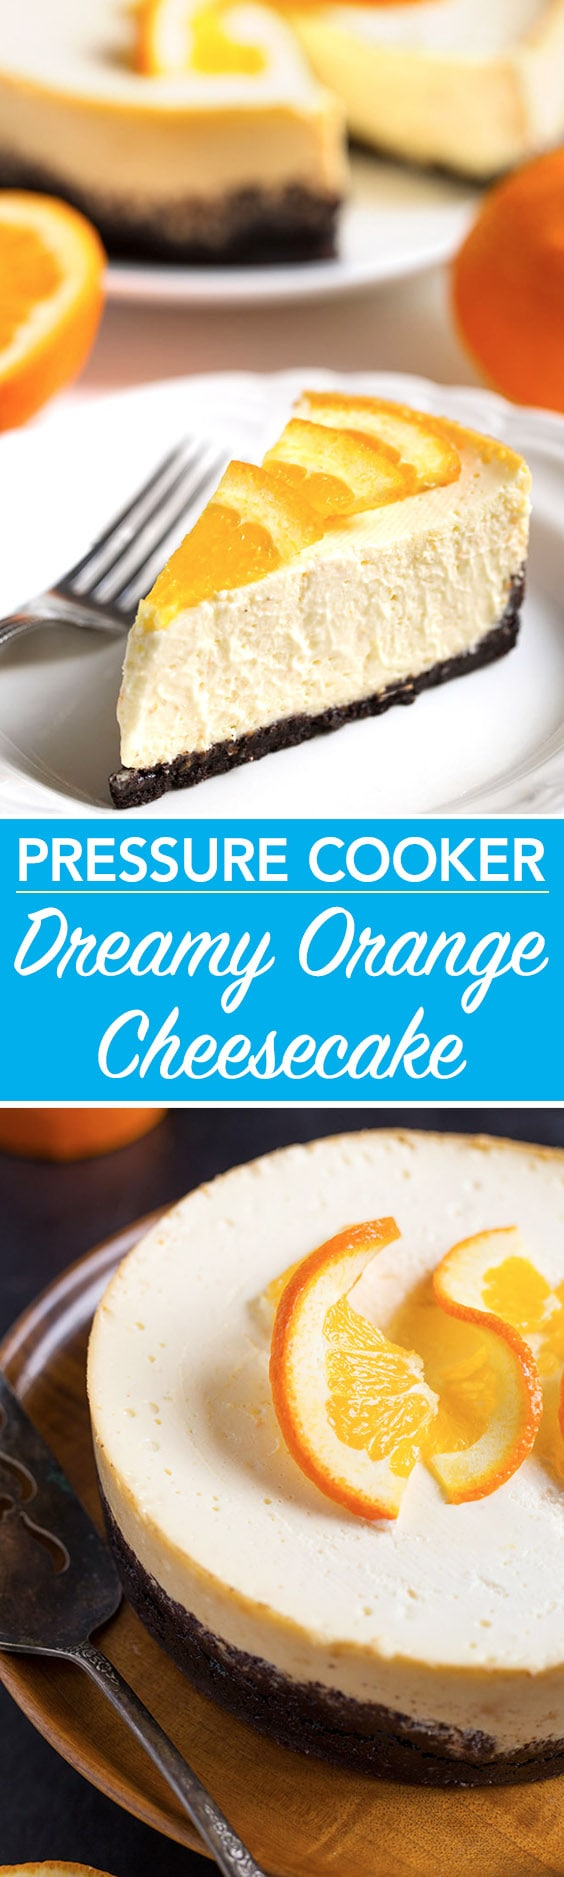 Pressure Cooker Dreamy Orange Cheesecake is the perfectly delicious, creamy orange cheesecake! Make it in your Instant Pot! simplyhappyfoodie.com